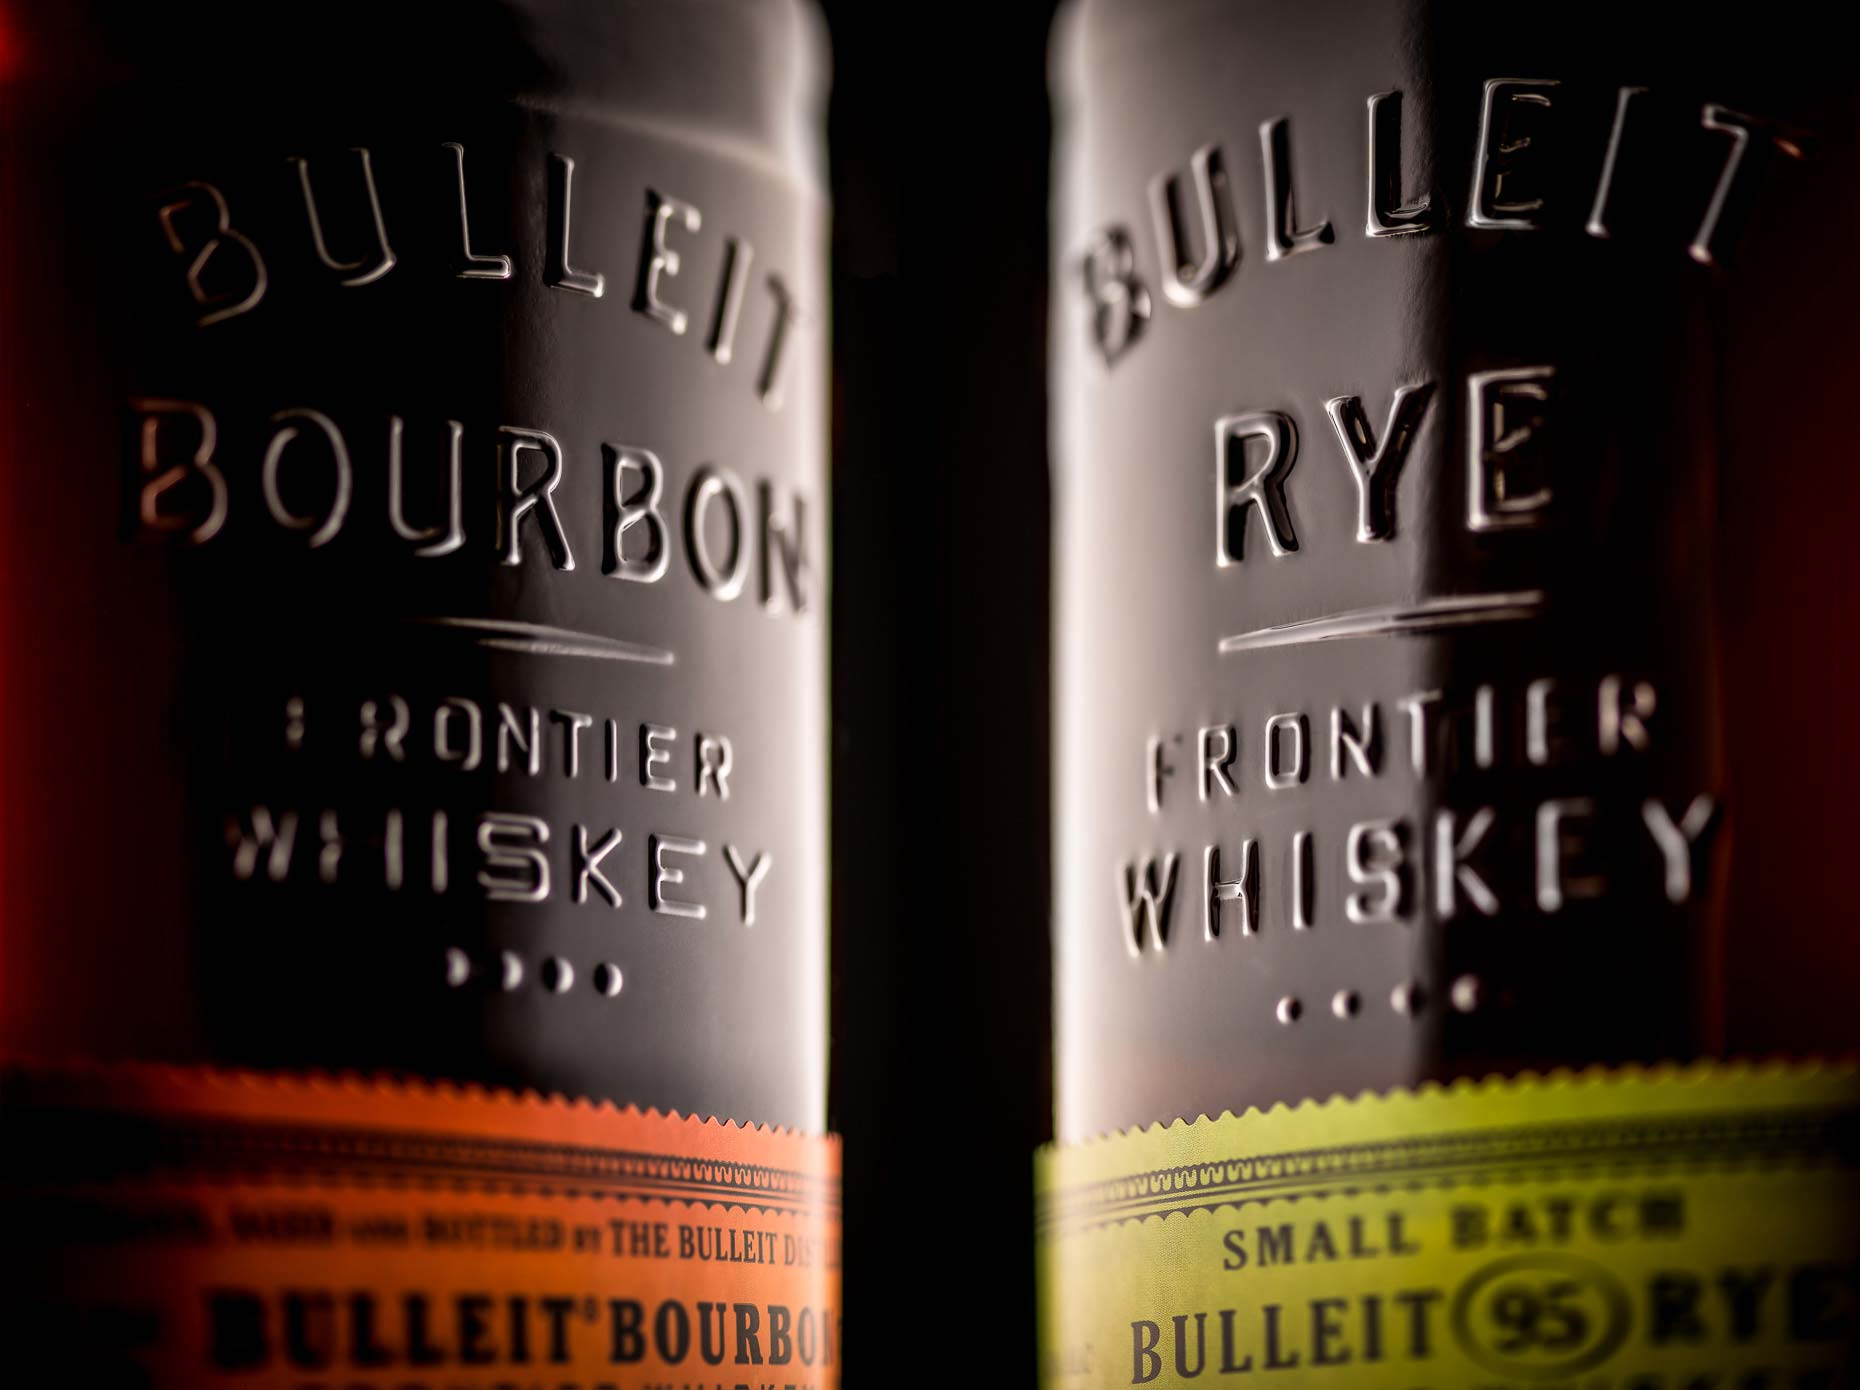 Bulleit Rye and Bulleit Bourbon